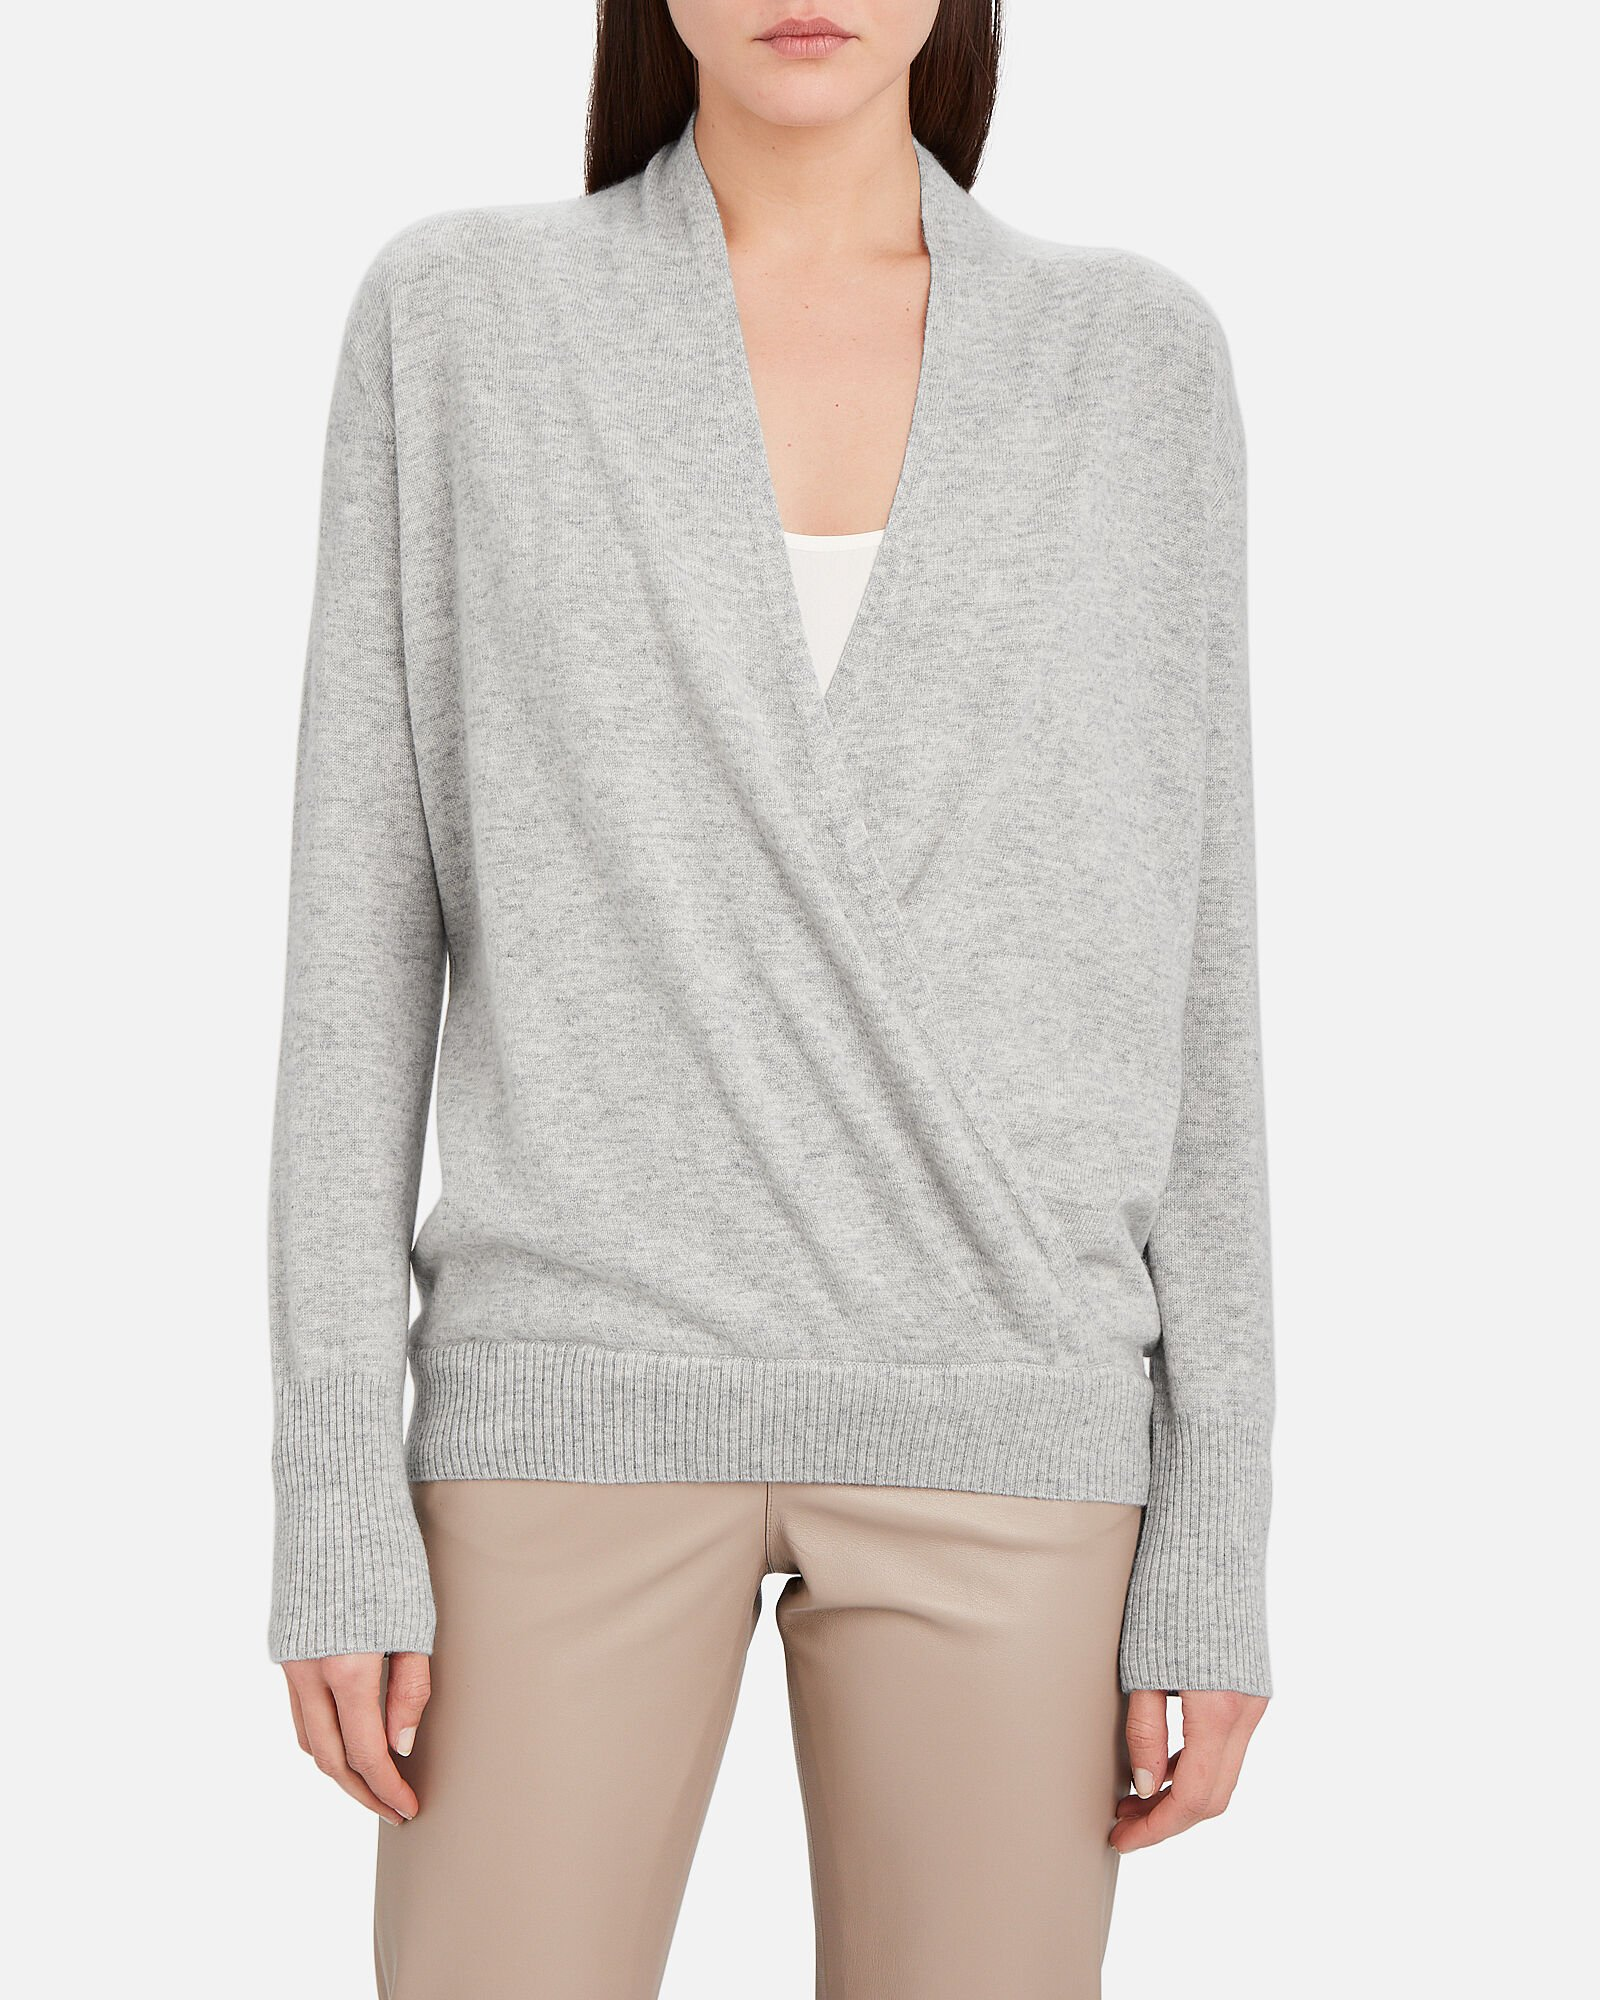 Looker Layered Wrap Sweater, GREY, hi-res